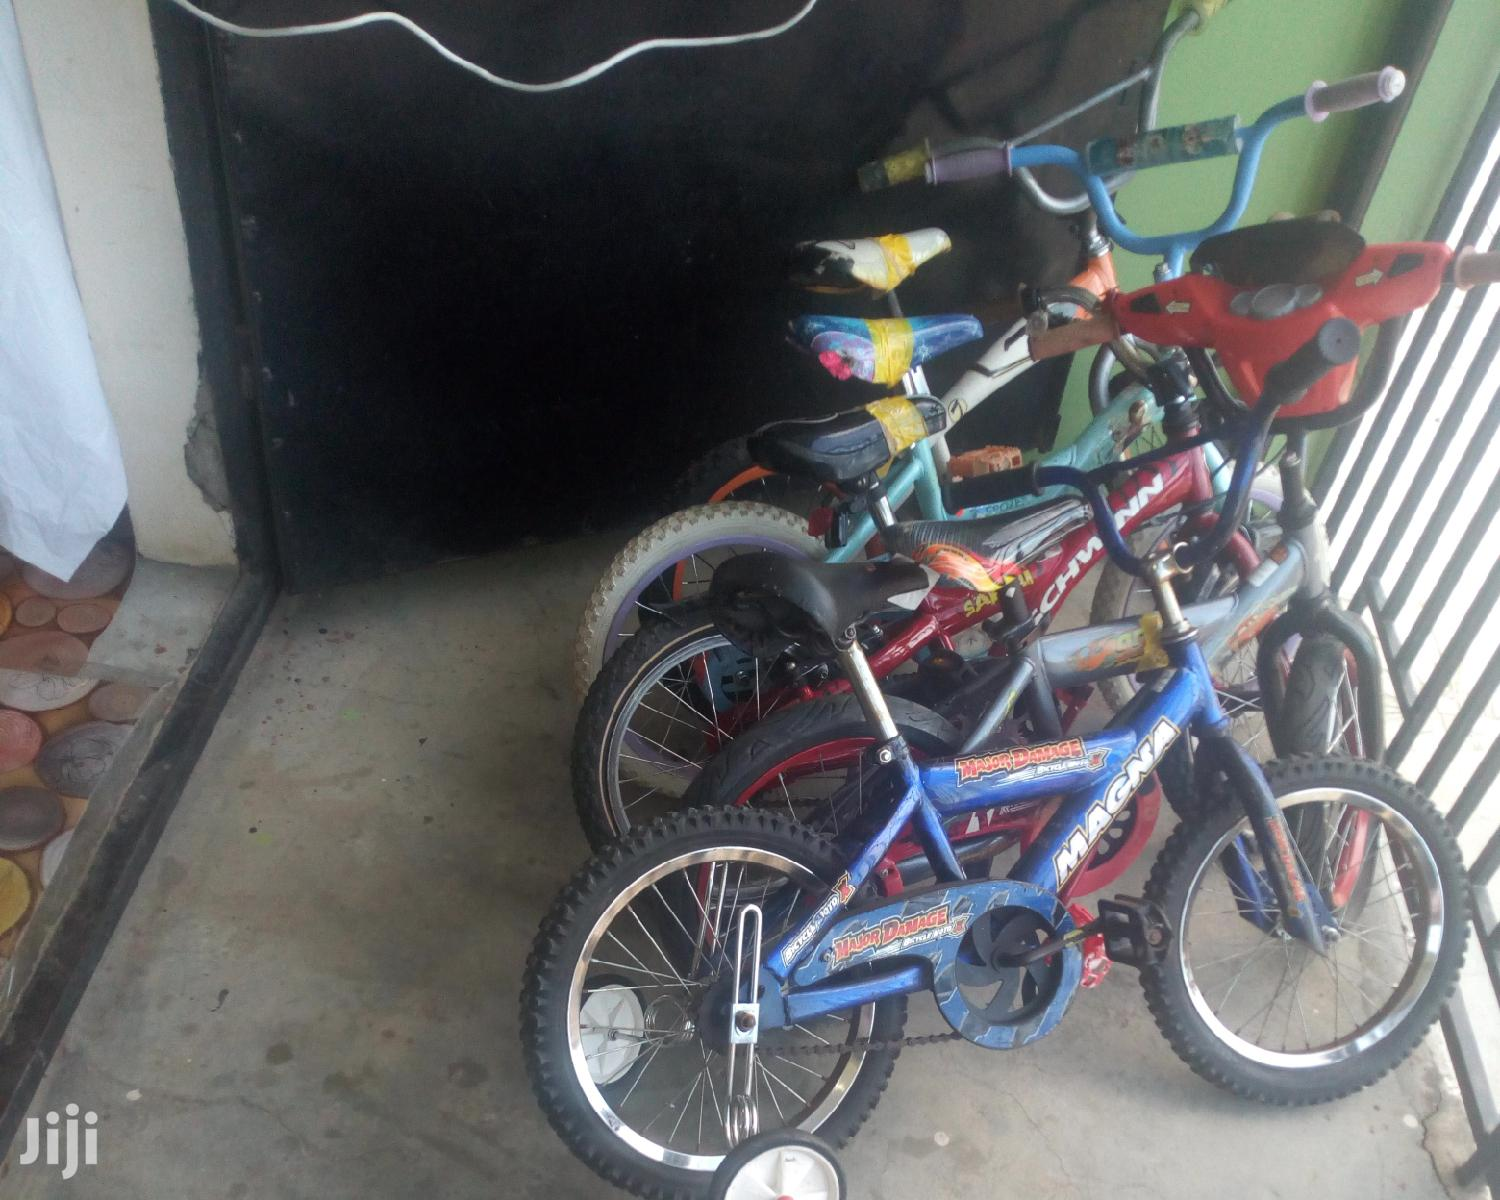 Archive: Bicycle for Sale.All Sold Out Its Left With 2 Bicycles